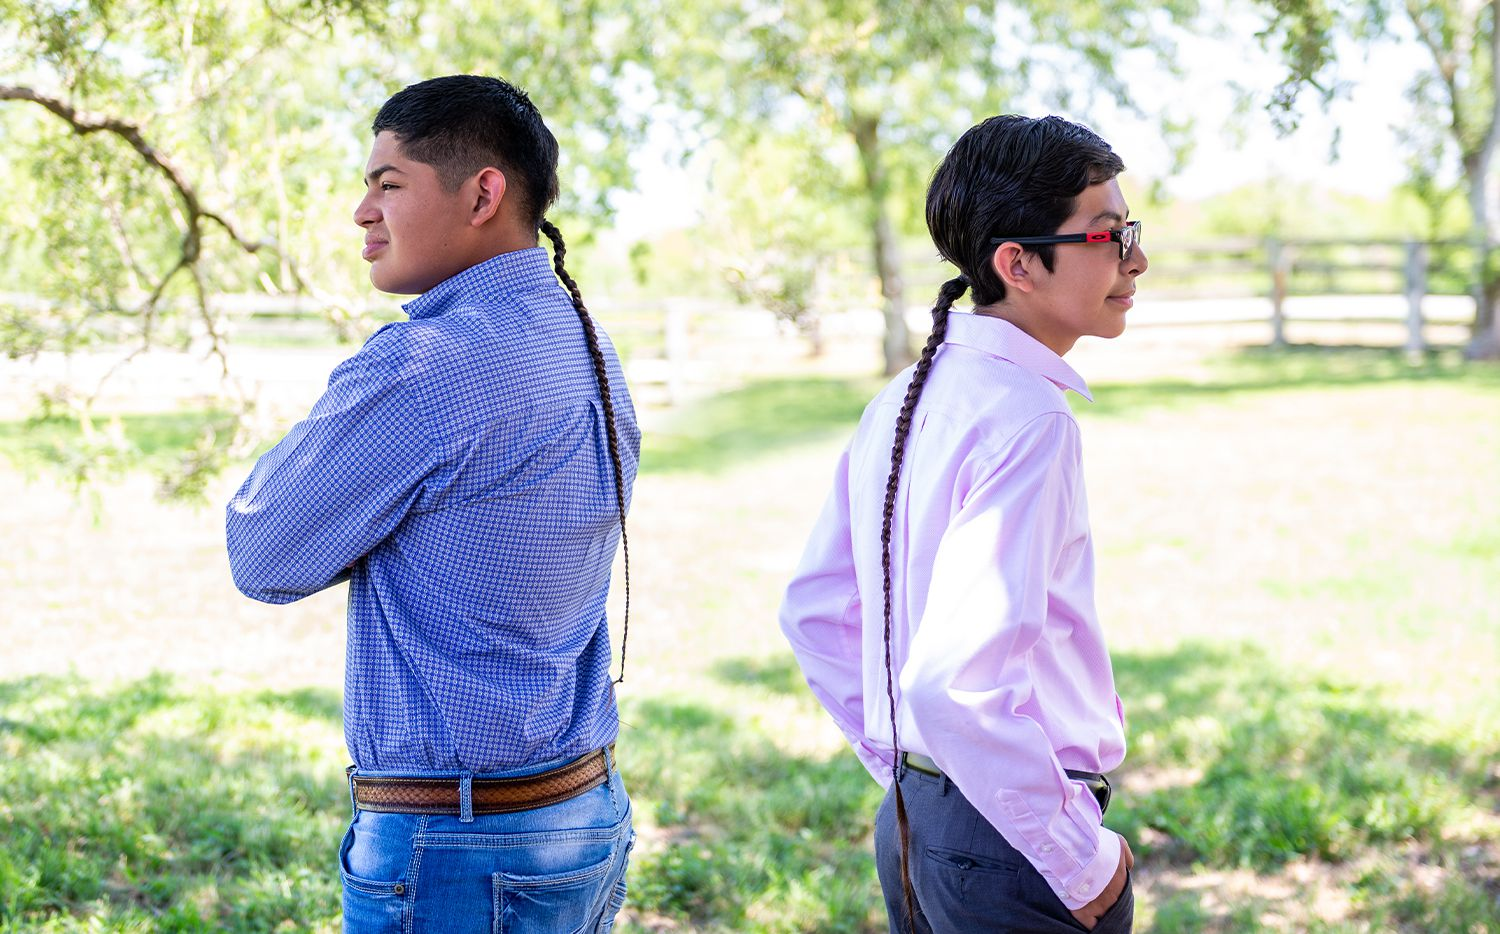 Cesar Gonzales (left) and brother Diego Gonzales were barred from extracurricular activities in the Mathis Independent School District because they would not cut their hair. The boys have been growing their braids since they were babies as a religious symbol.